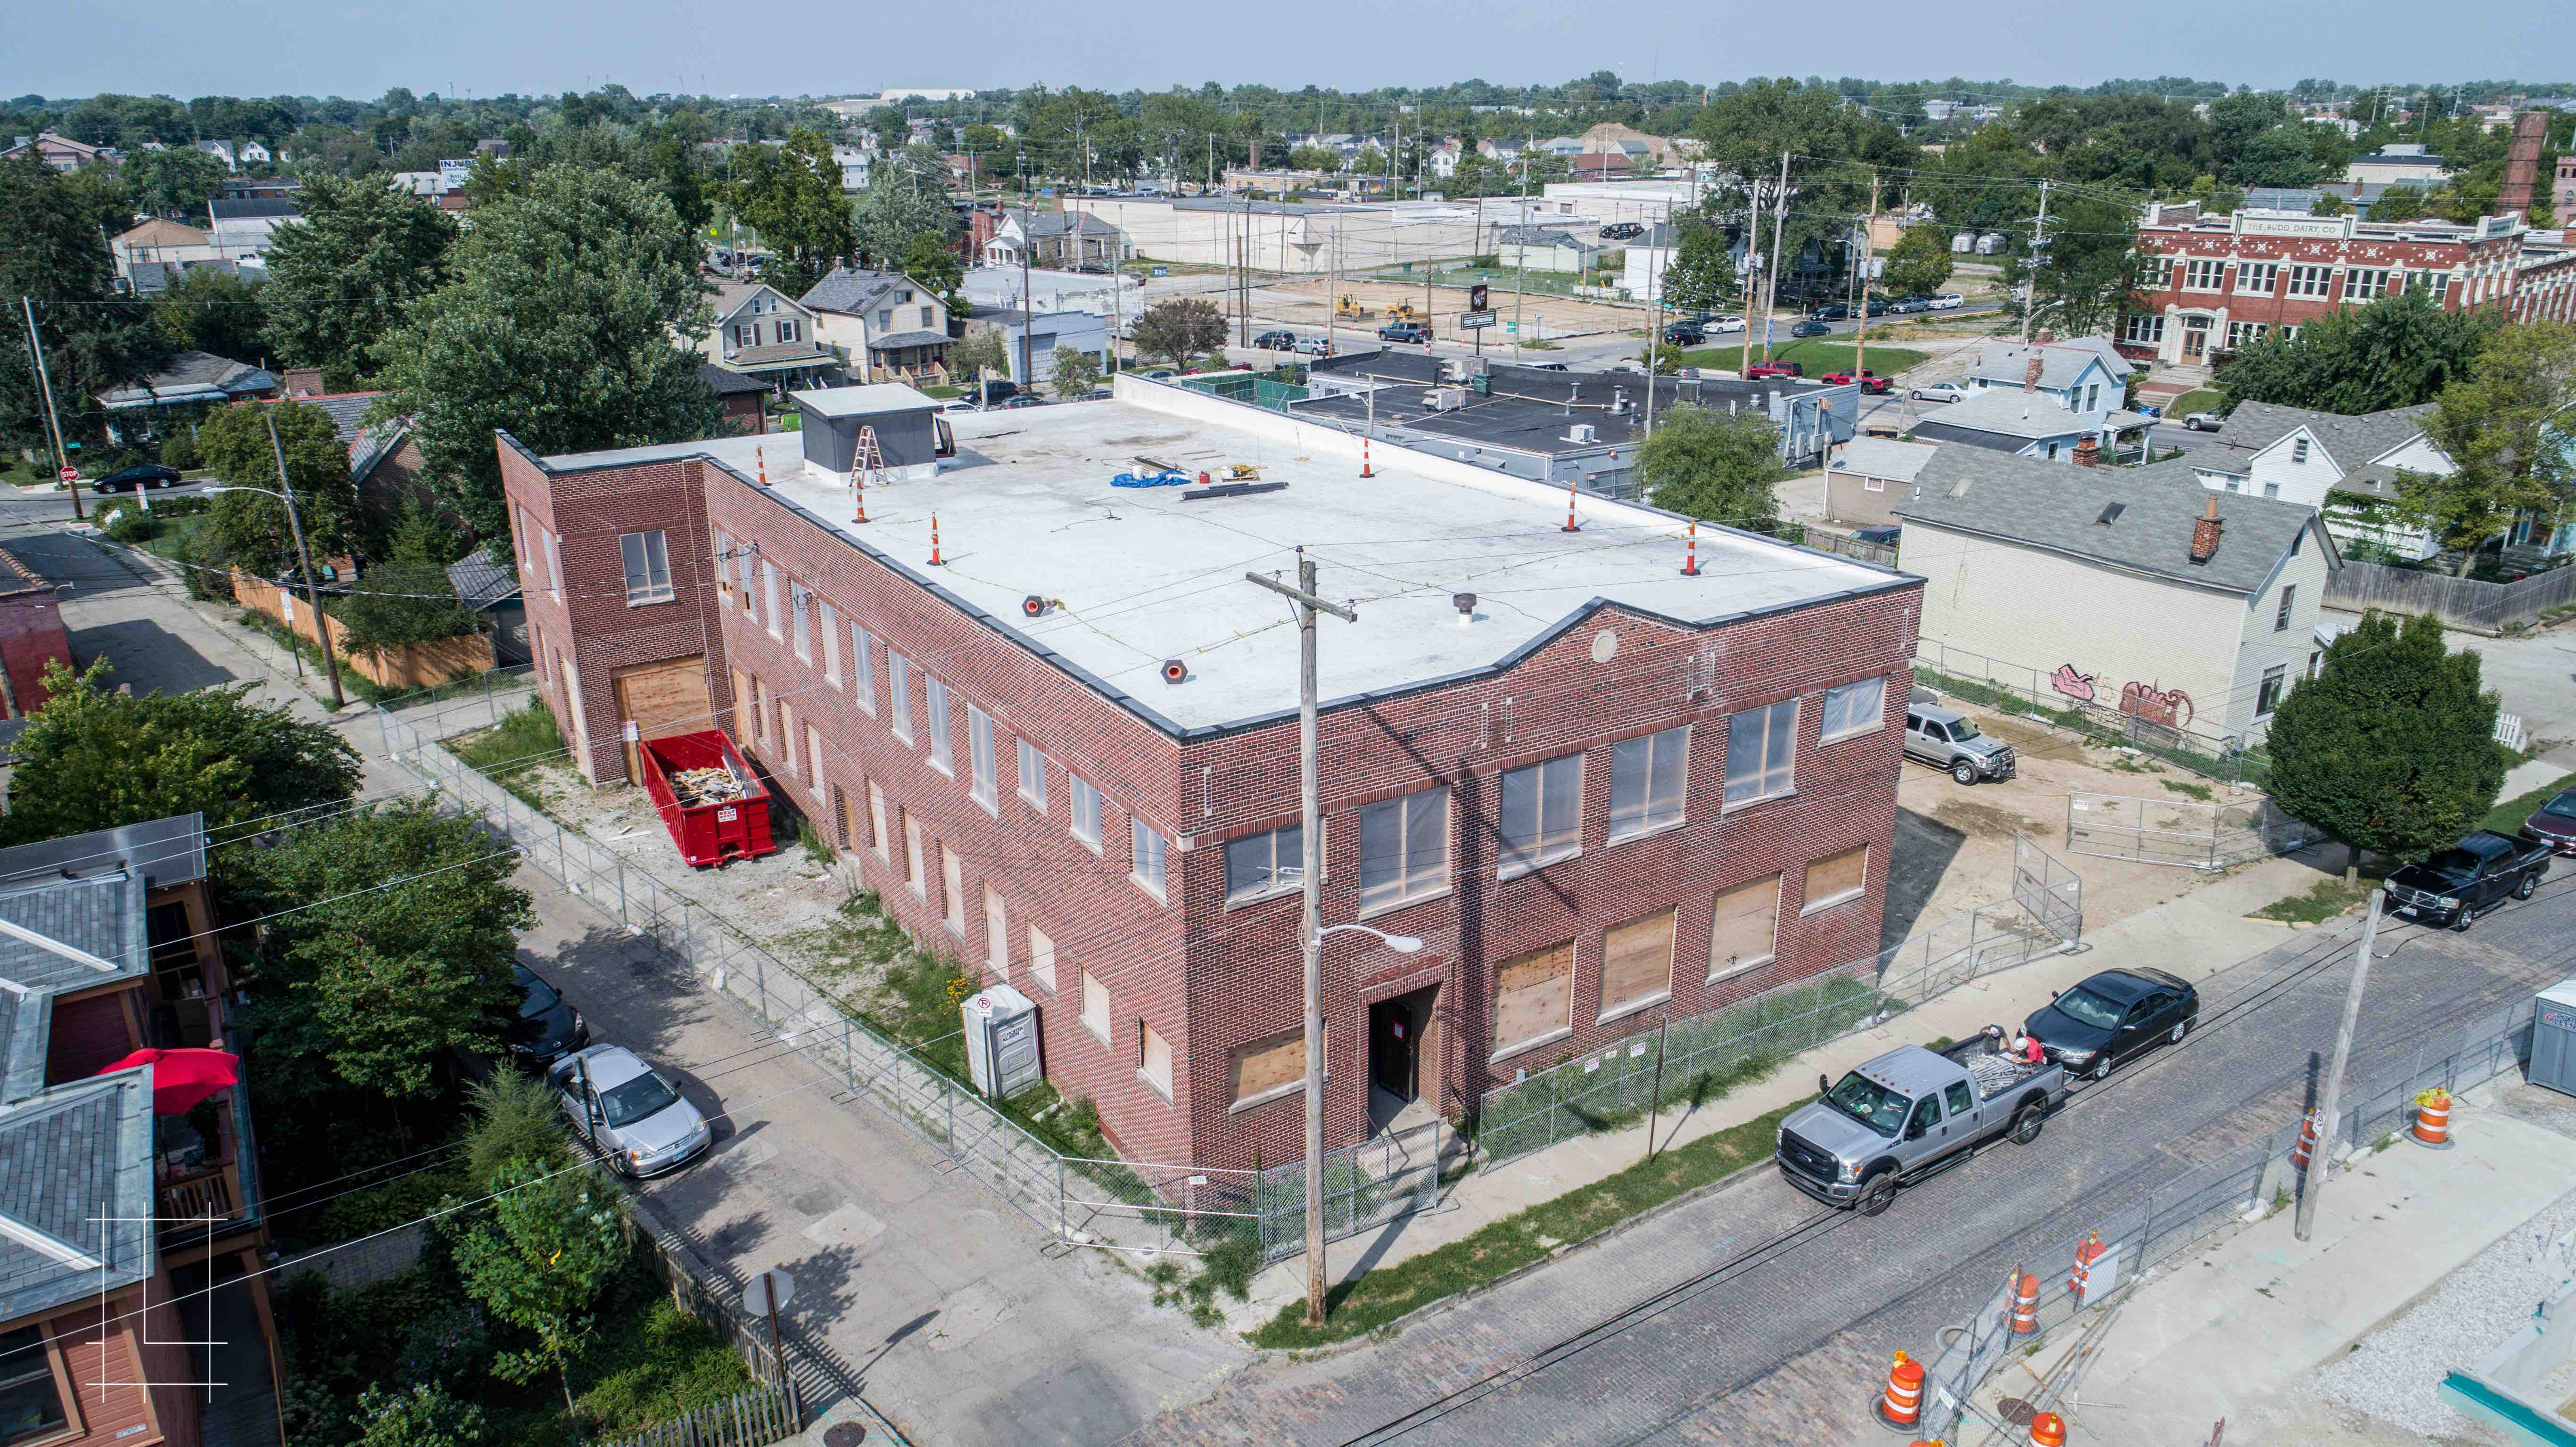 The EJ Thomas Co.'s former warehouse sat empty for years before Lykens Companies gave it a full renovation, filling it with 20 1 bedroom, 1 bathroom luxury apartments. Located in Columbus, Ohio, Lykens Companies serves Columbus, Ohio's urban core with an eye toward historical preservation and restoration. We are deeply involved in the Short North, Victorian Village, Italian Village, Olde Towne East, and Weiland Park communities.